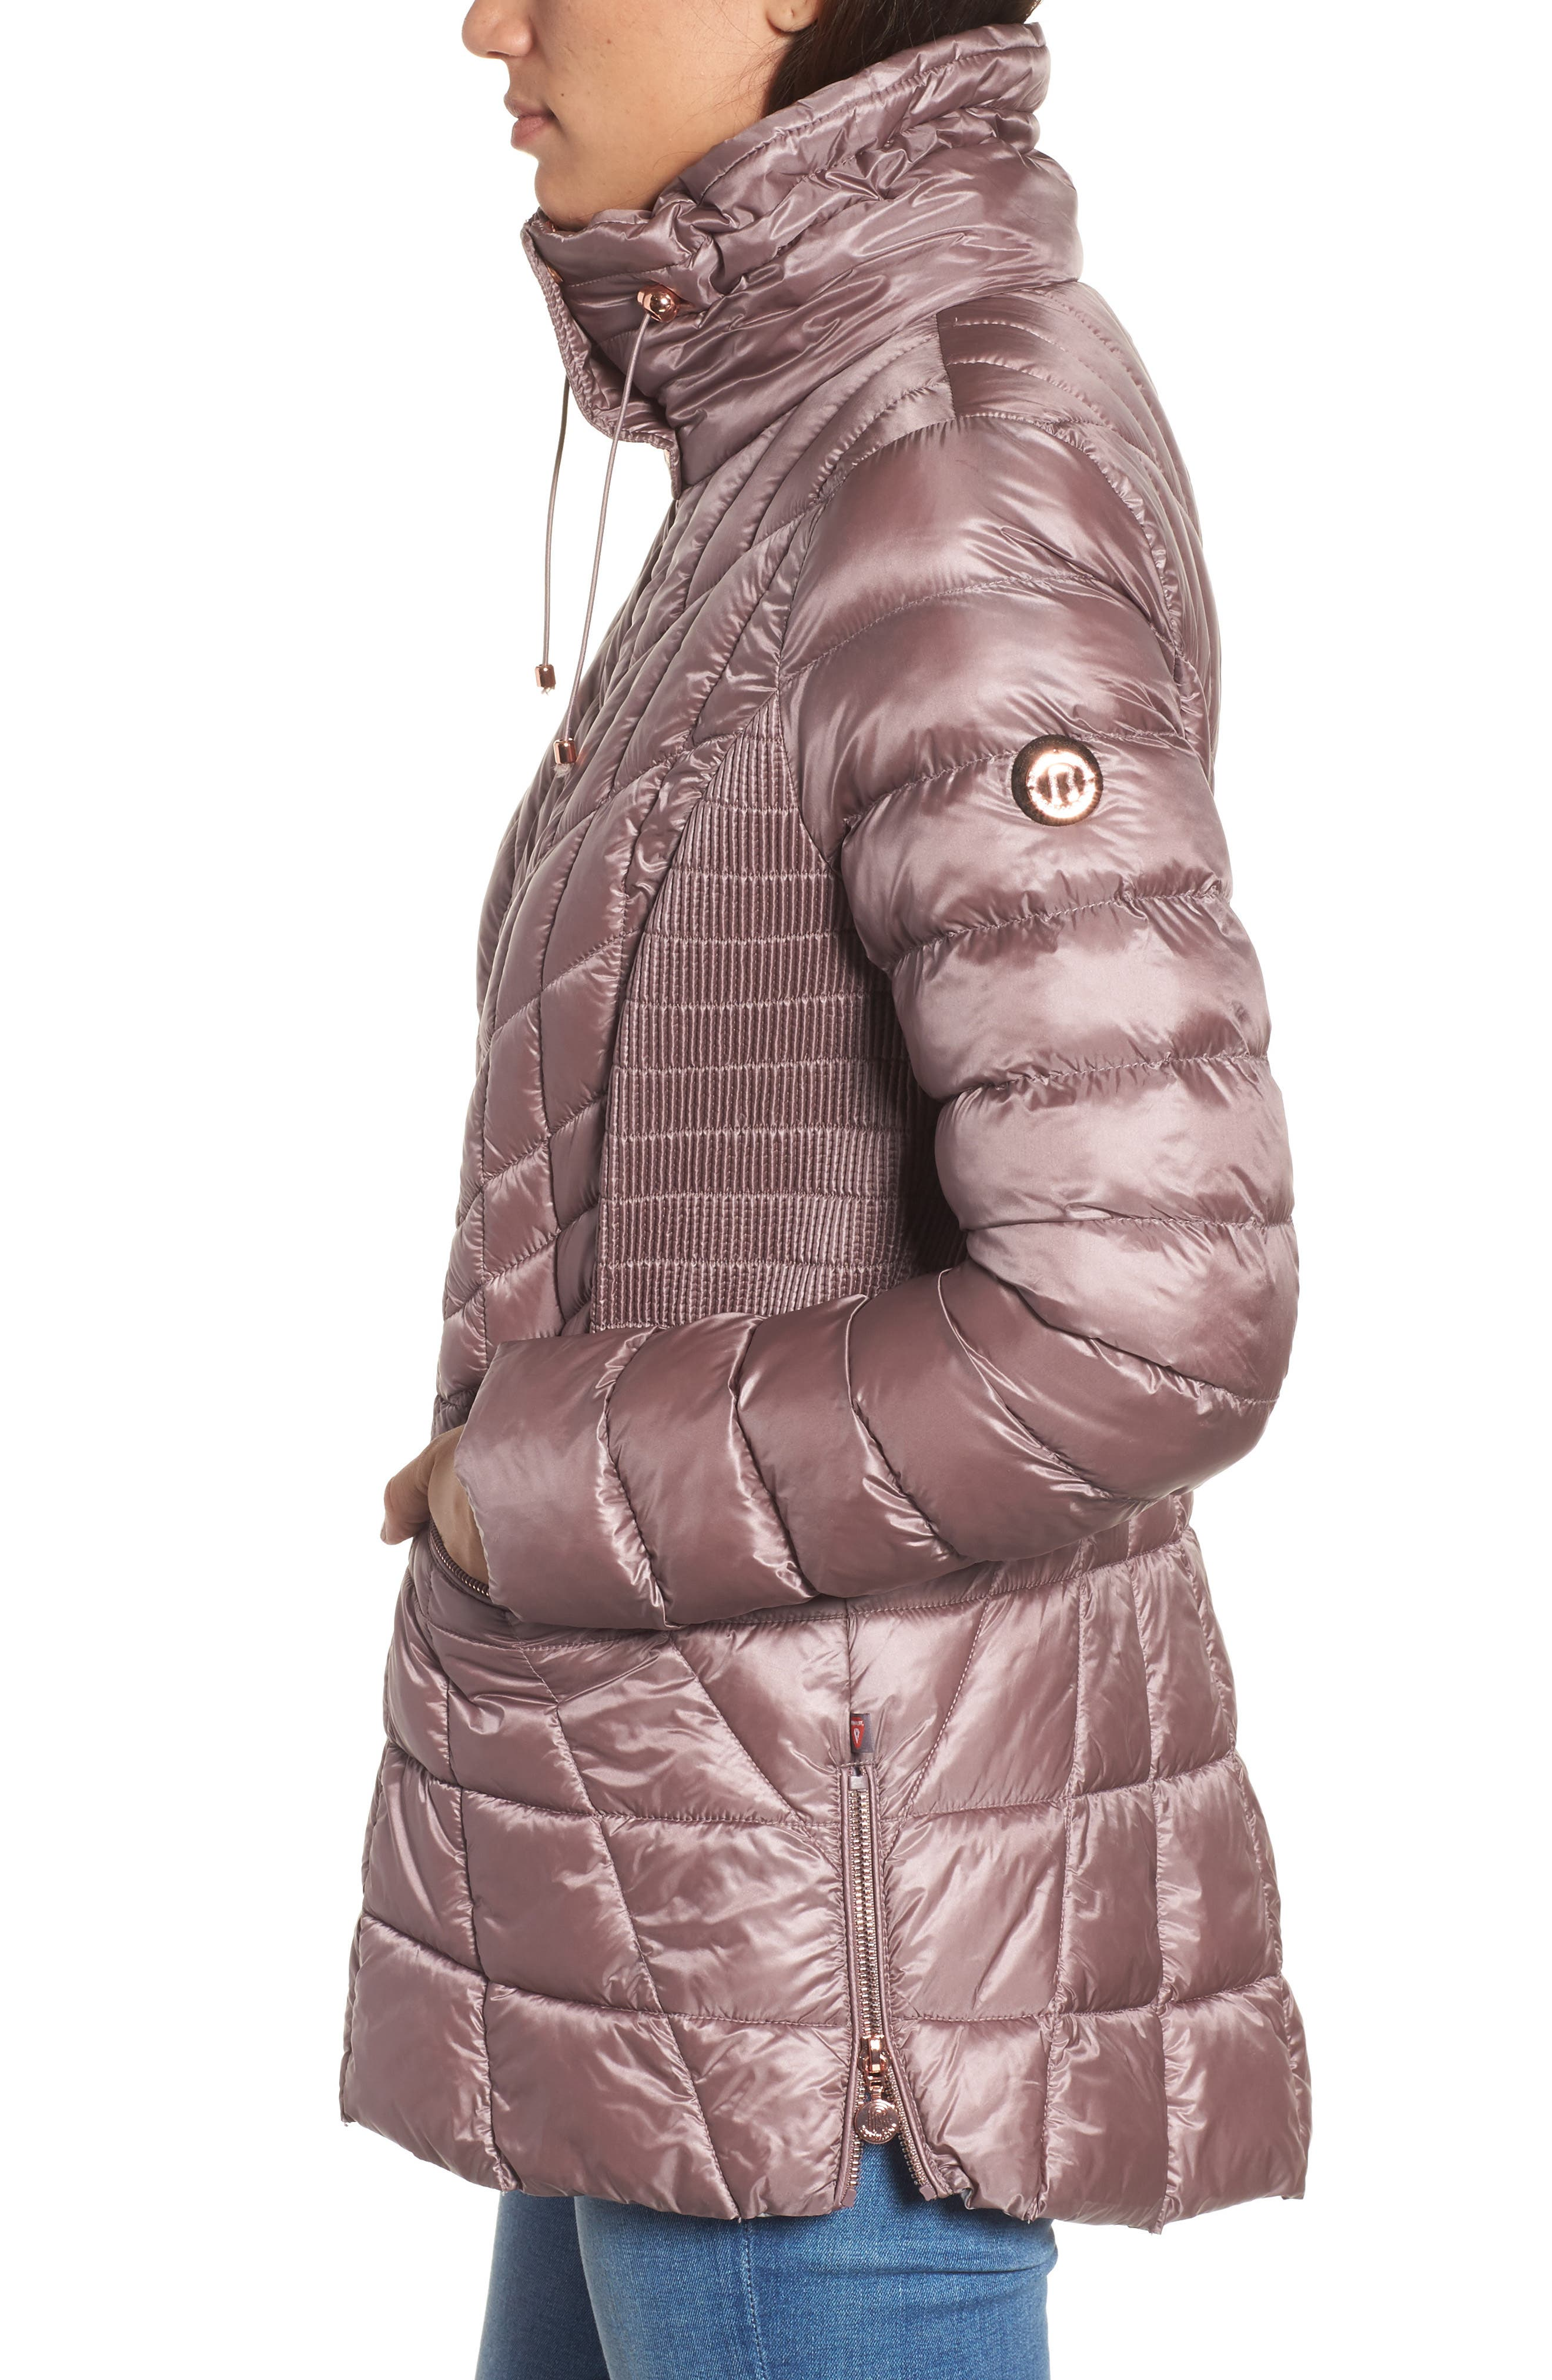 Thermoplume Insulated Jacket,                             Alternate thumbnail 18, color,